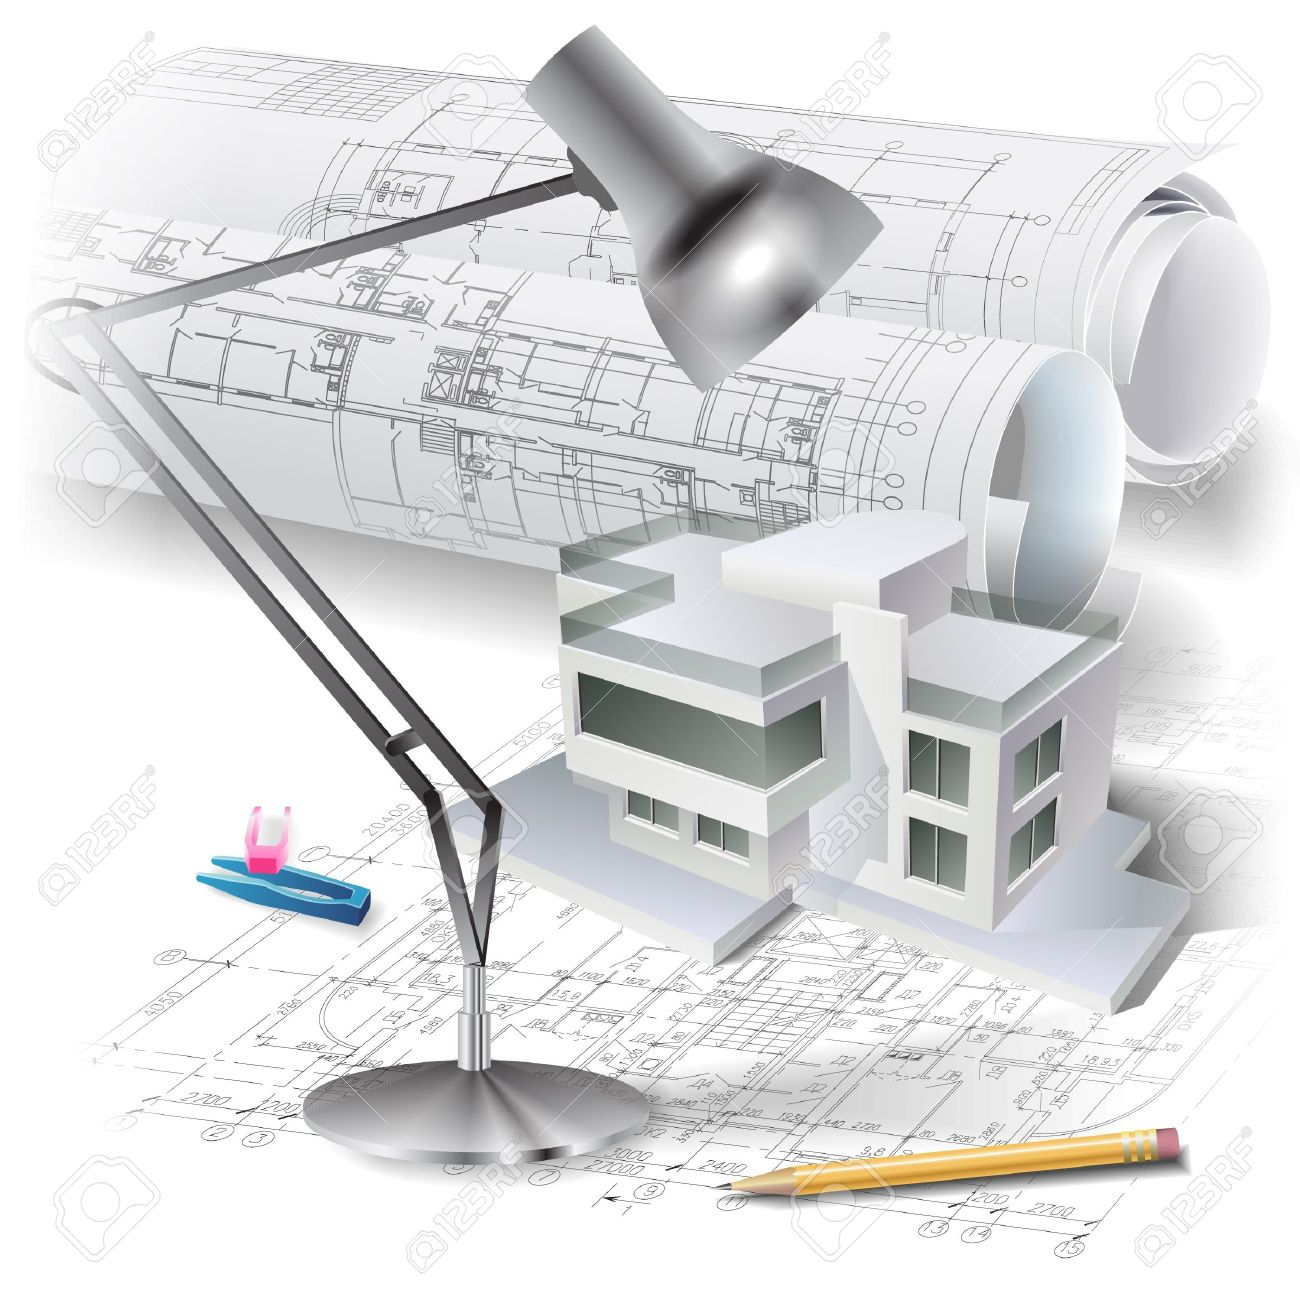 Architectural plans architectural background with a 3d building model